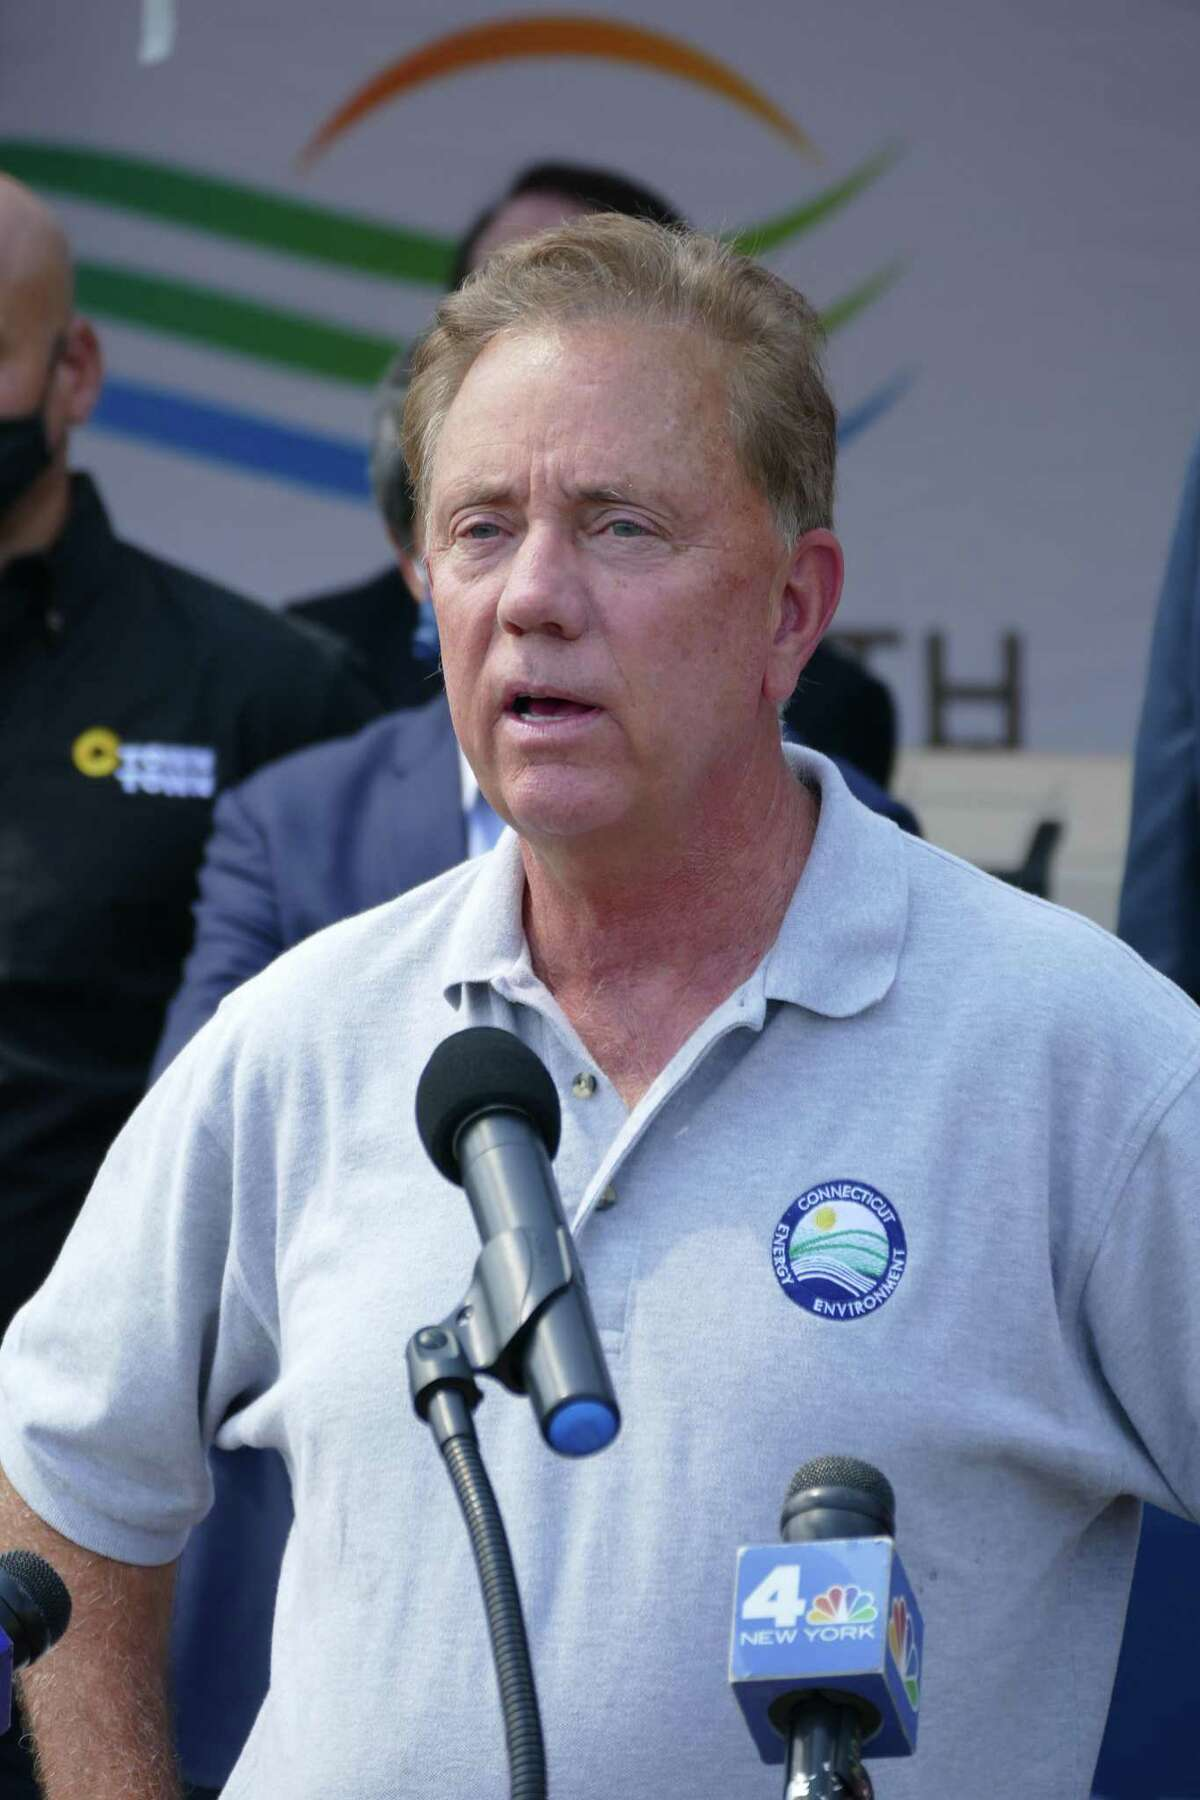 Gov. Ned Lamont speaks during a press conference outside the CTown grocery store on North Street in Danbury, Conn. Friday, Aug. 27, 2021.